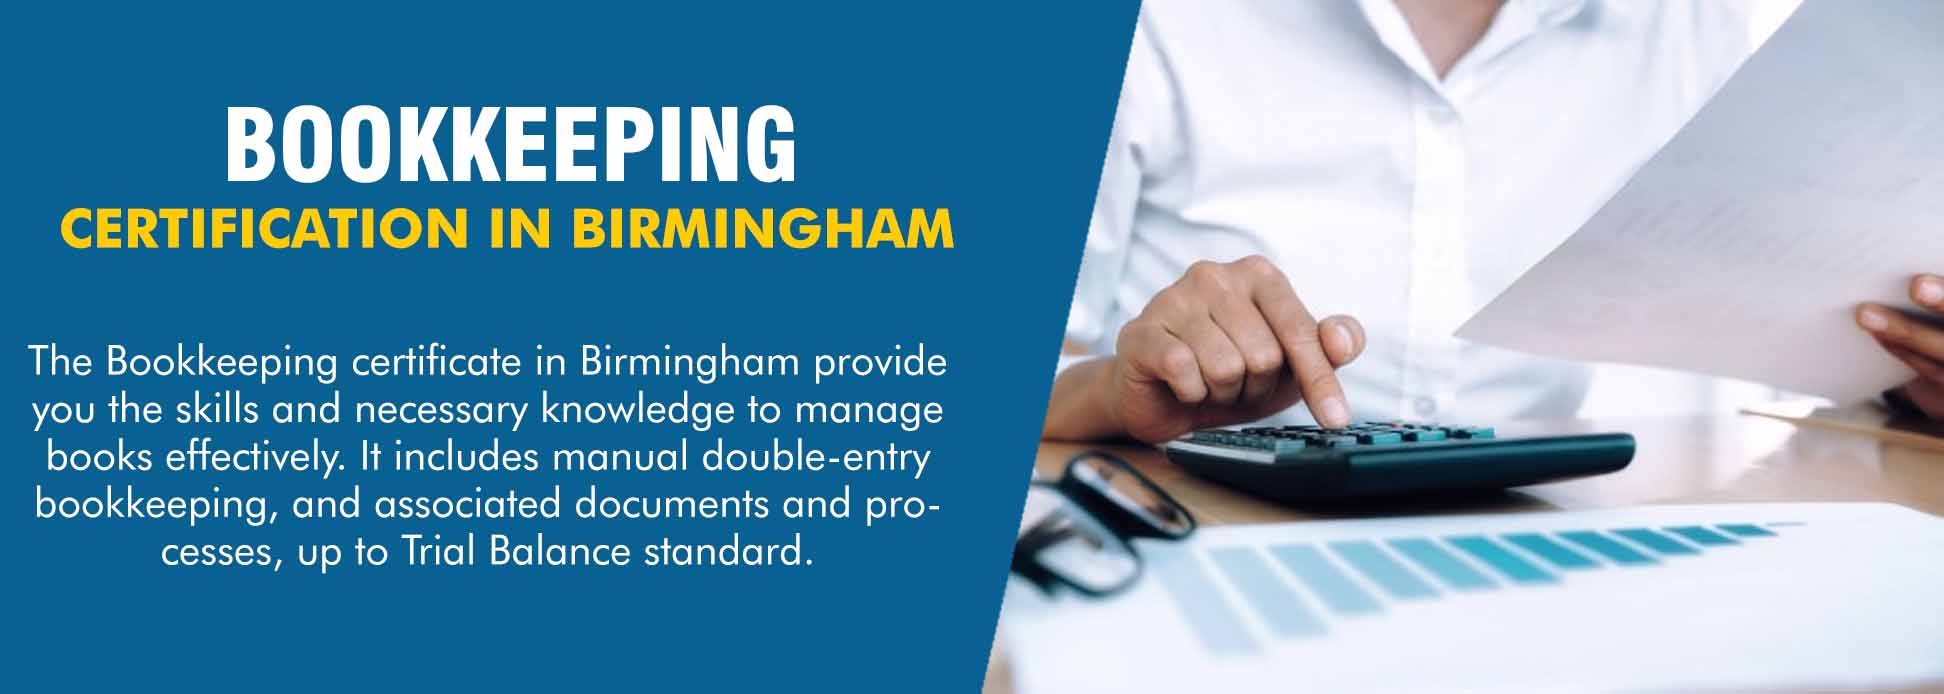 bookkeeping-certification-in-birmingham